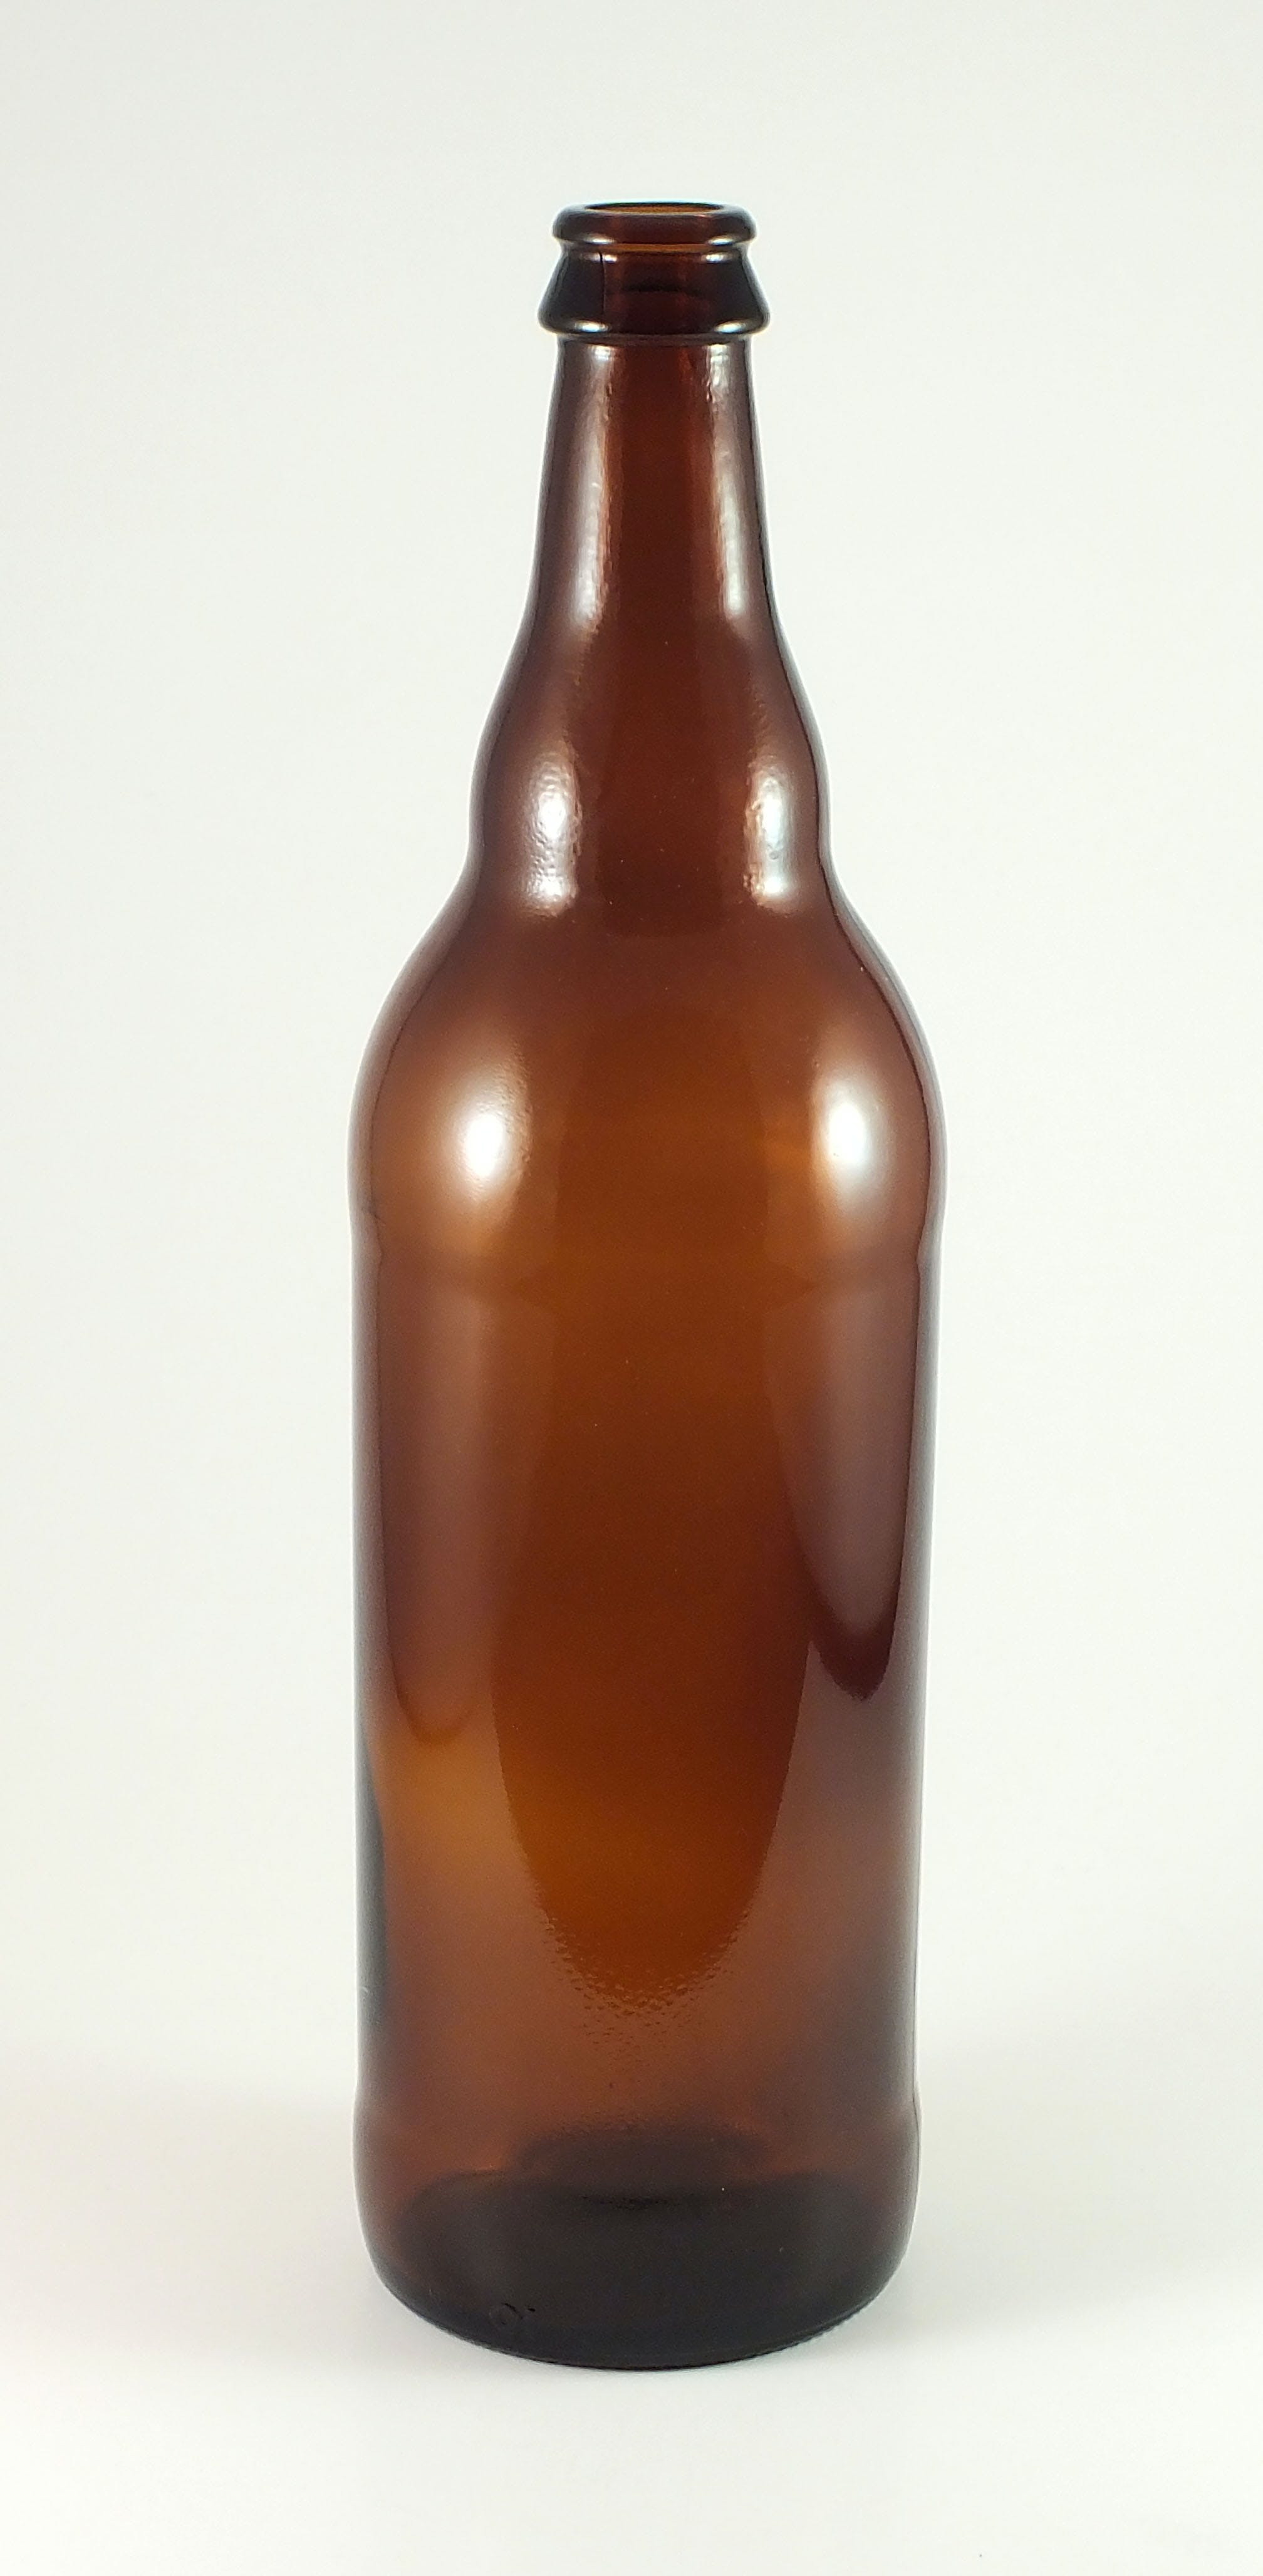 750ml belgium beer bottle amber brown crown glass 750 ml beer bottle